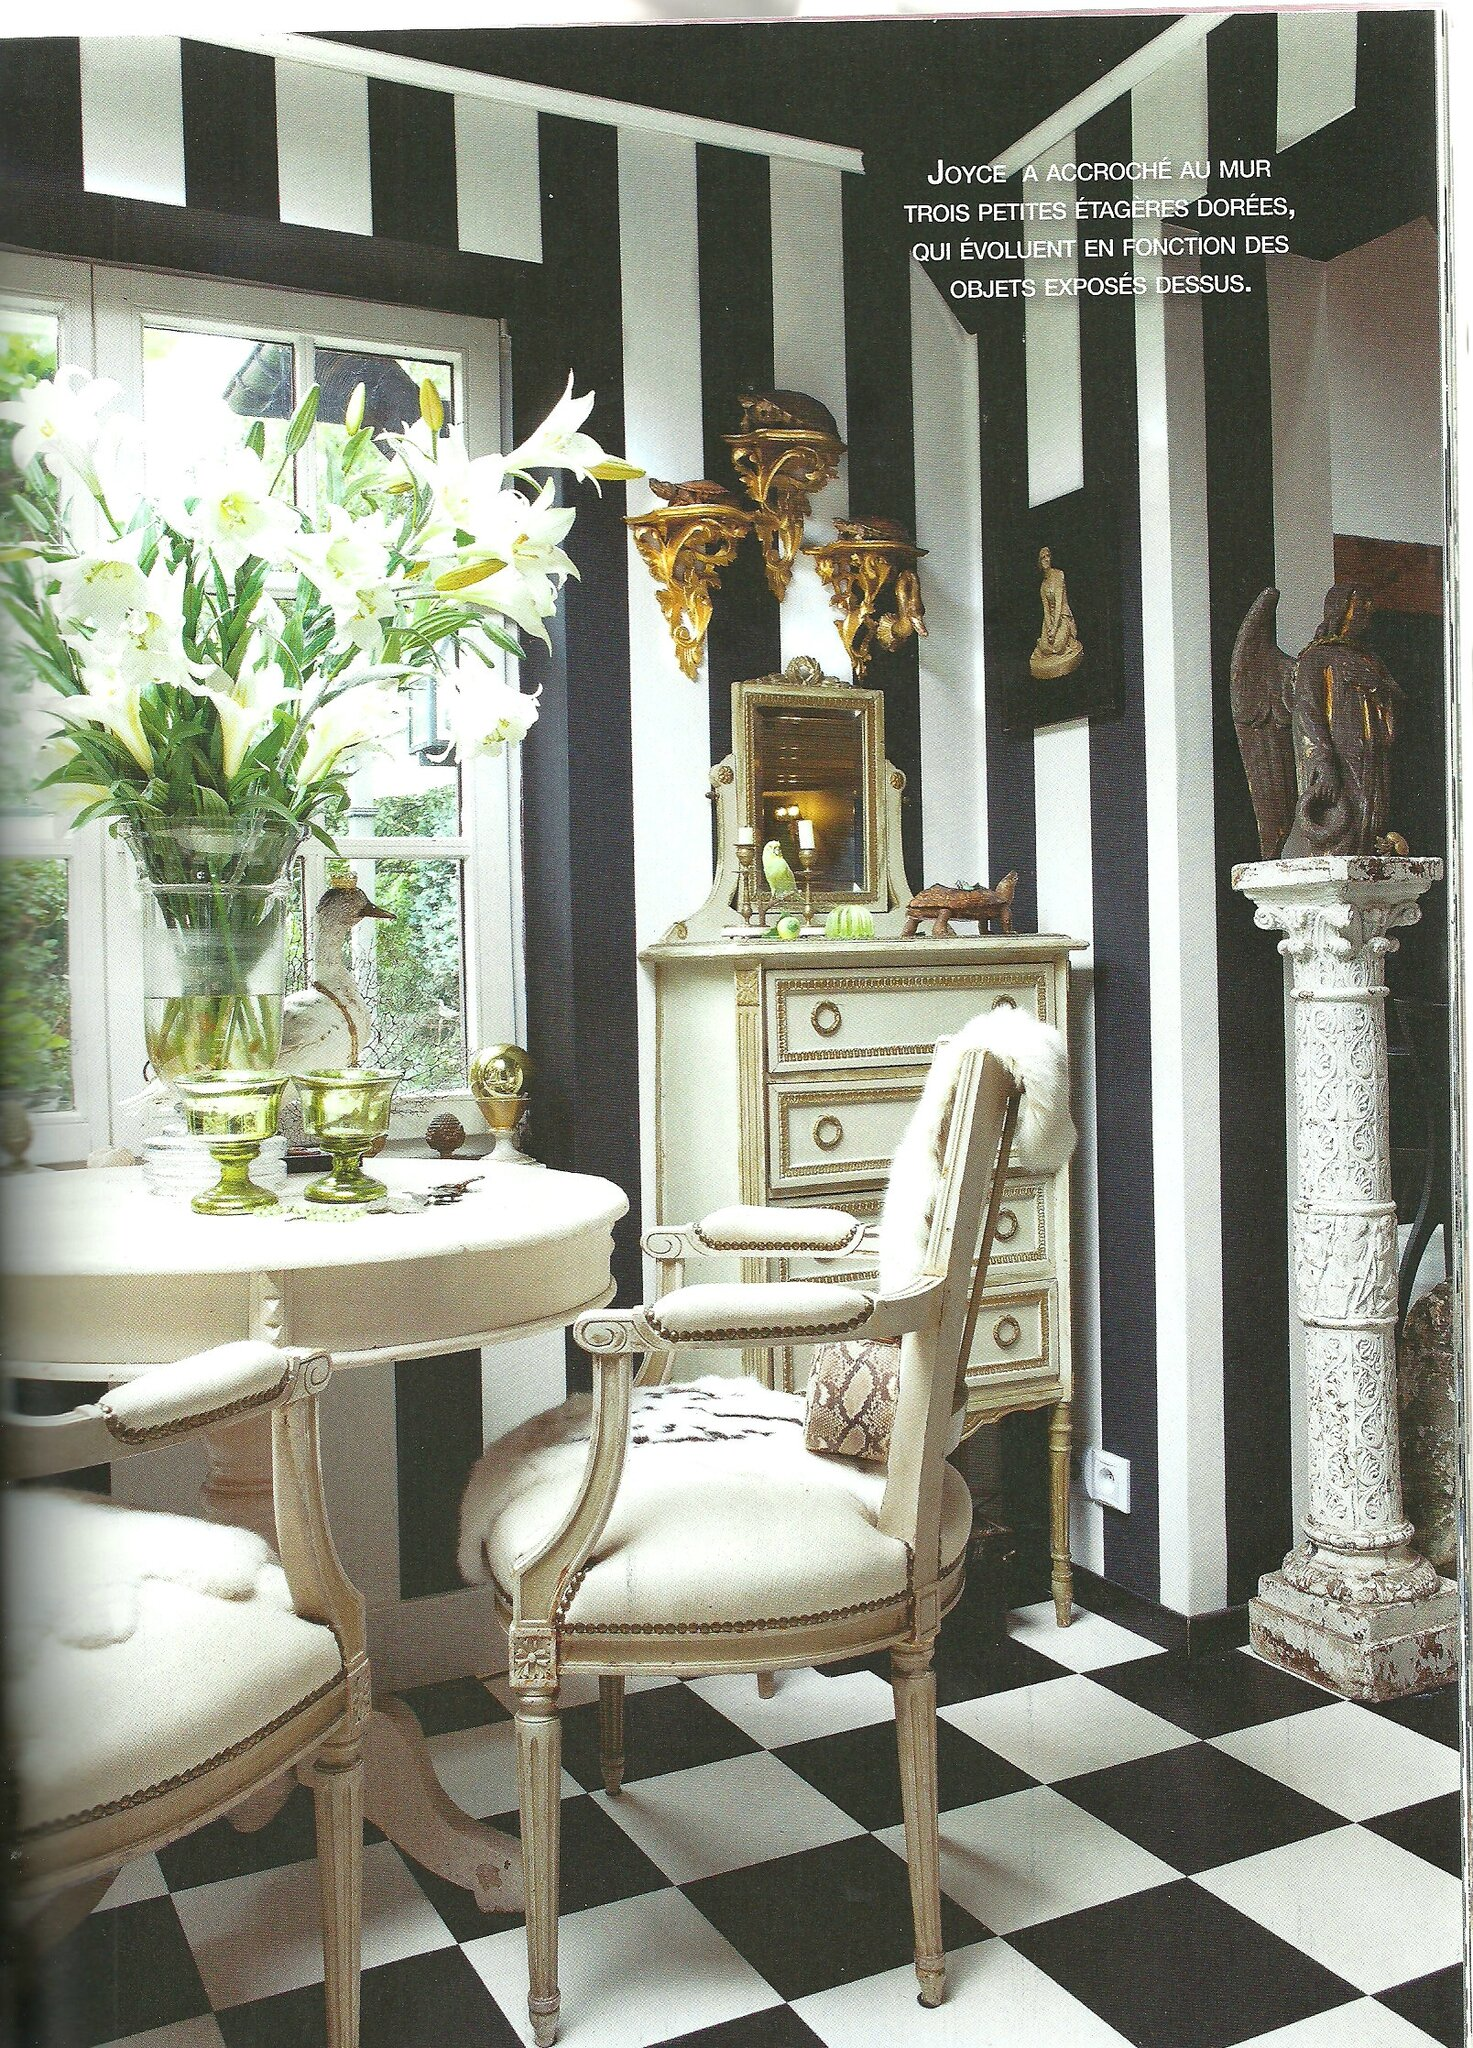 Magazine maison chic fabulous here is a selection of for Abonnement maison chic magazine